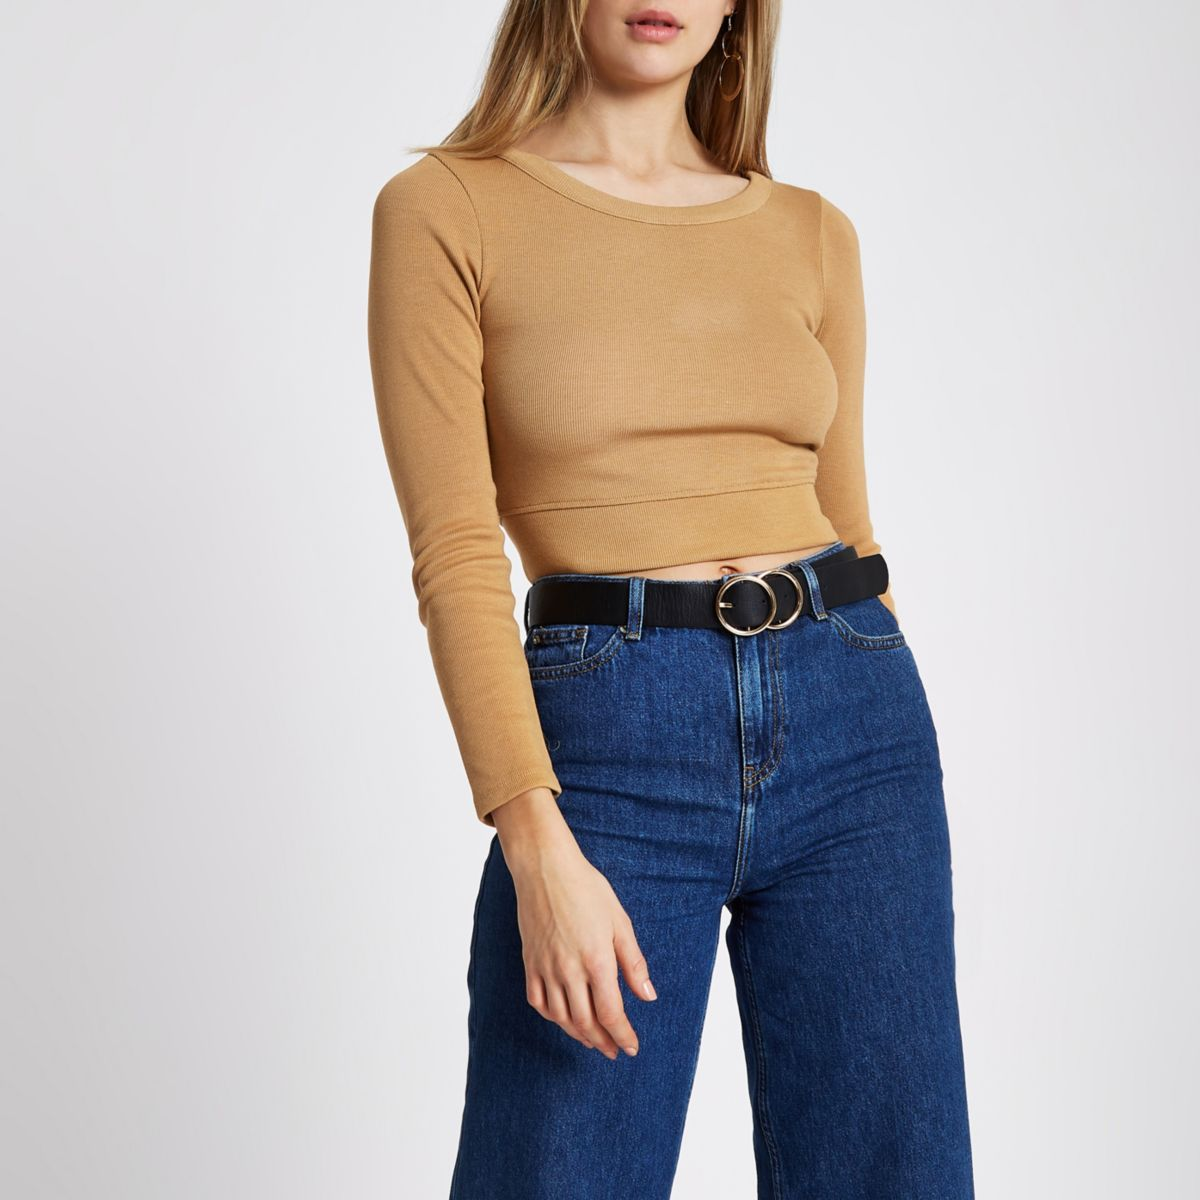 Tan long sleeve crop top